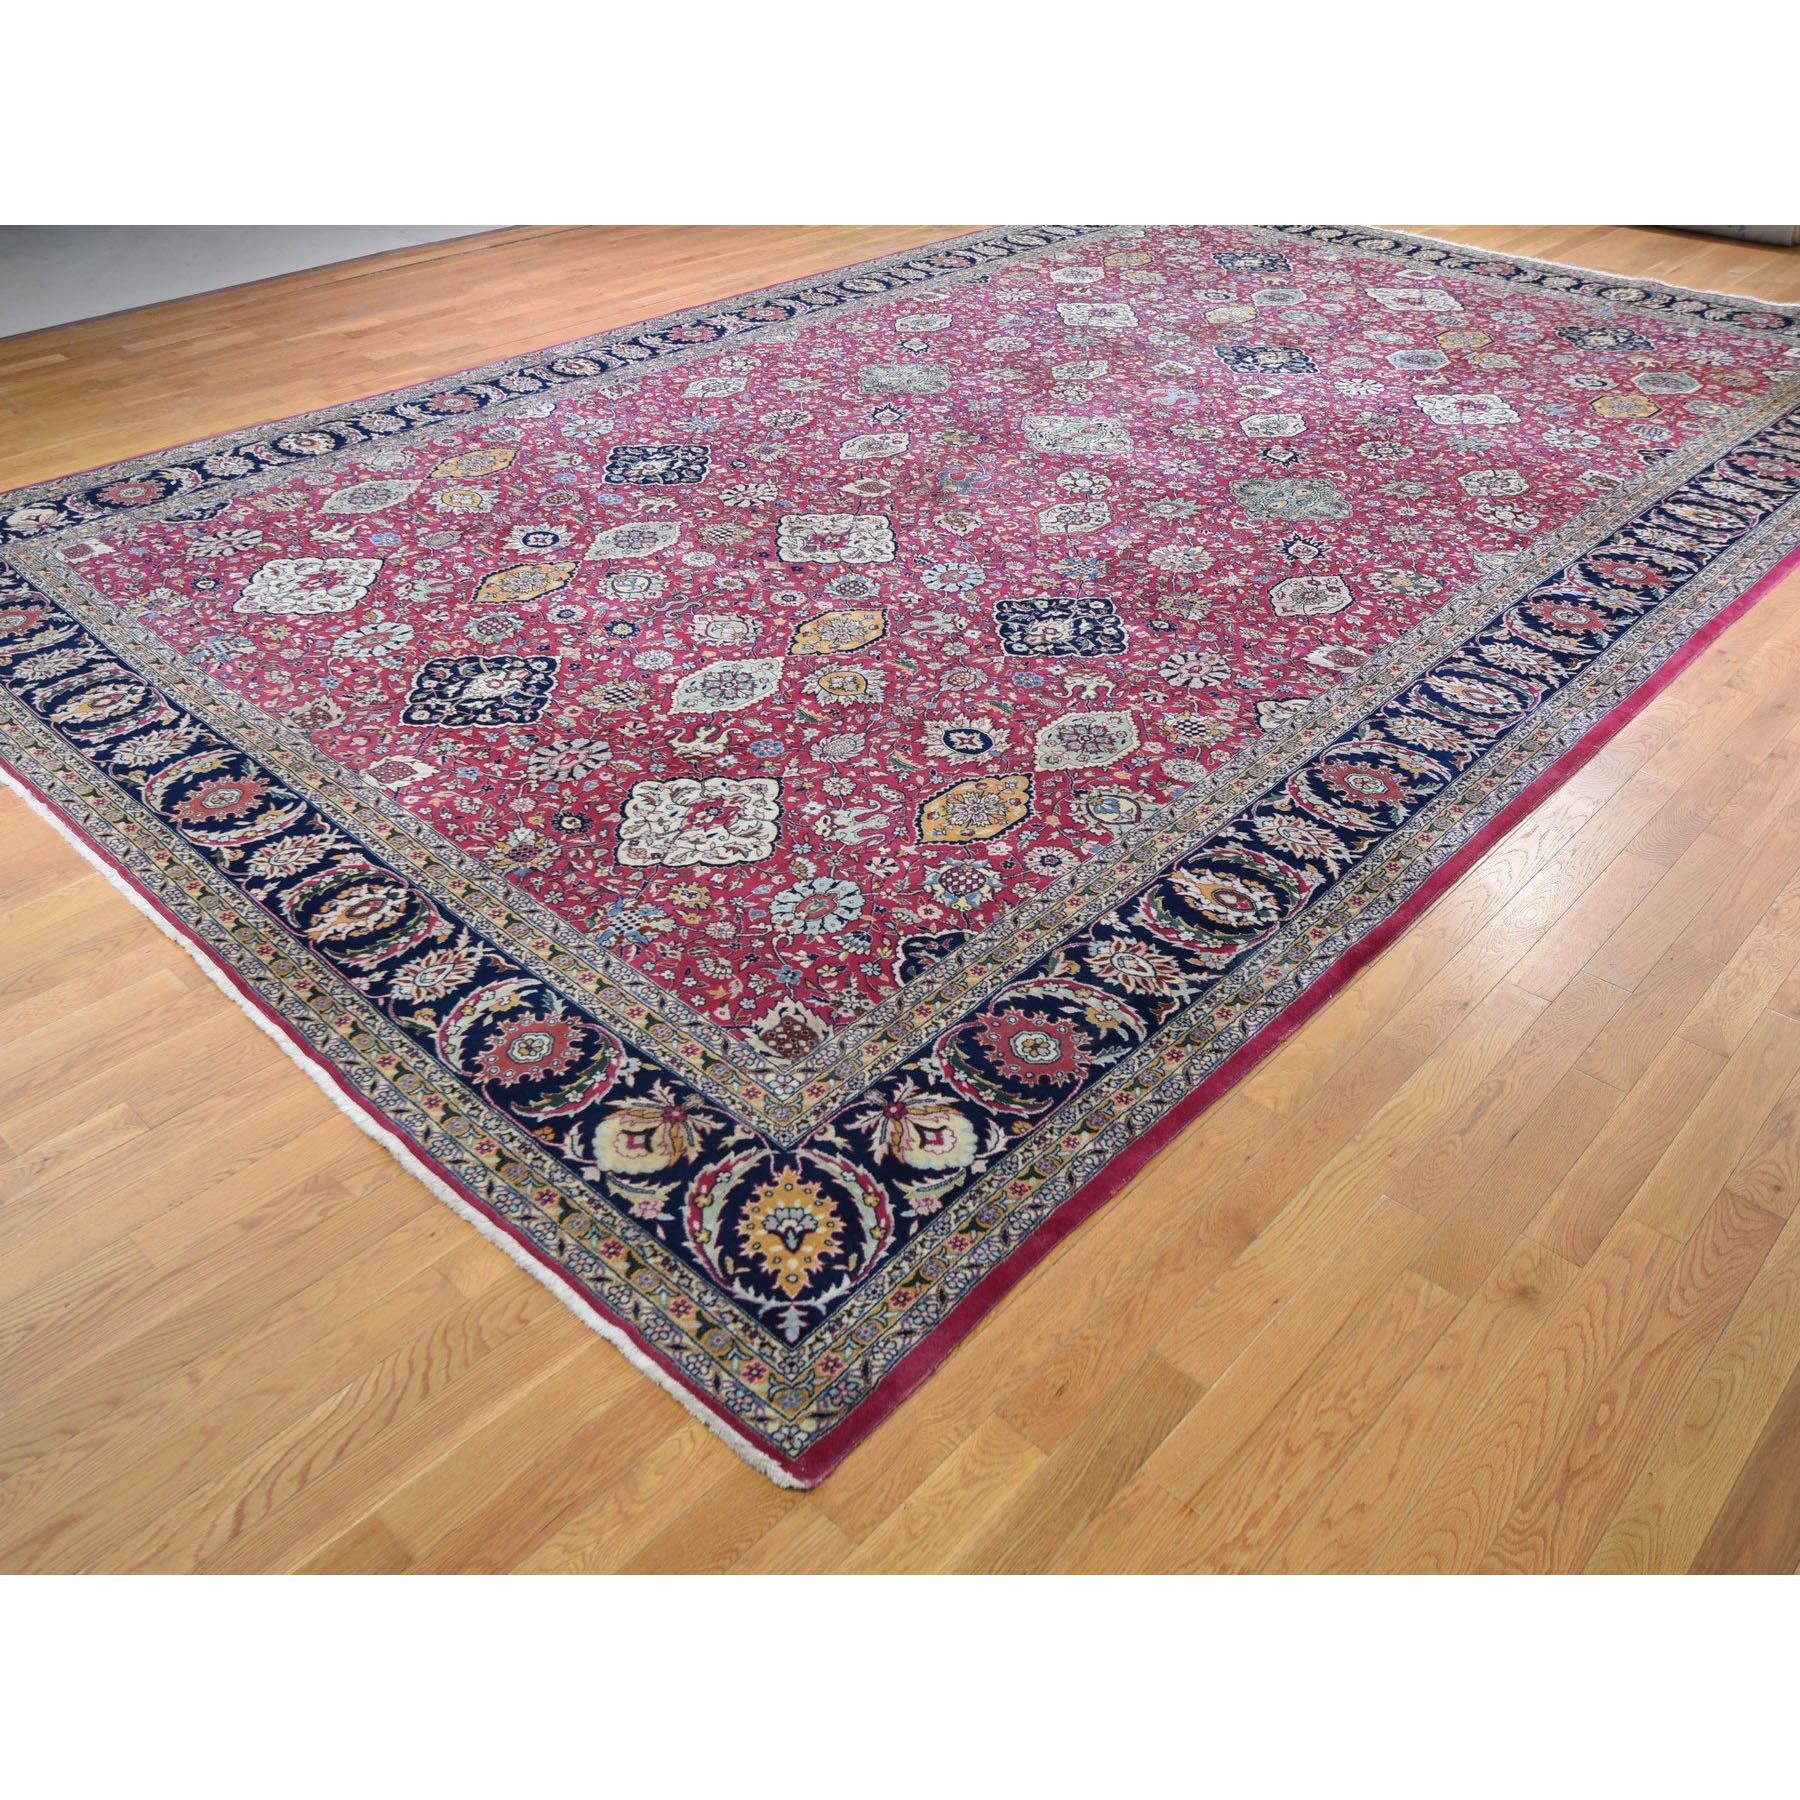 11-10 x18-6  Oversized Red Vintage Persian Tabriz All Over Design Some Wear Hand Knotted Oriental Rug